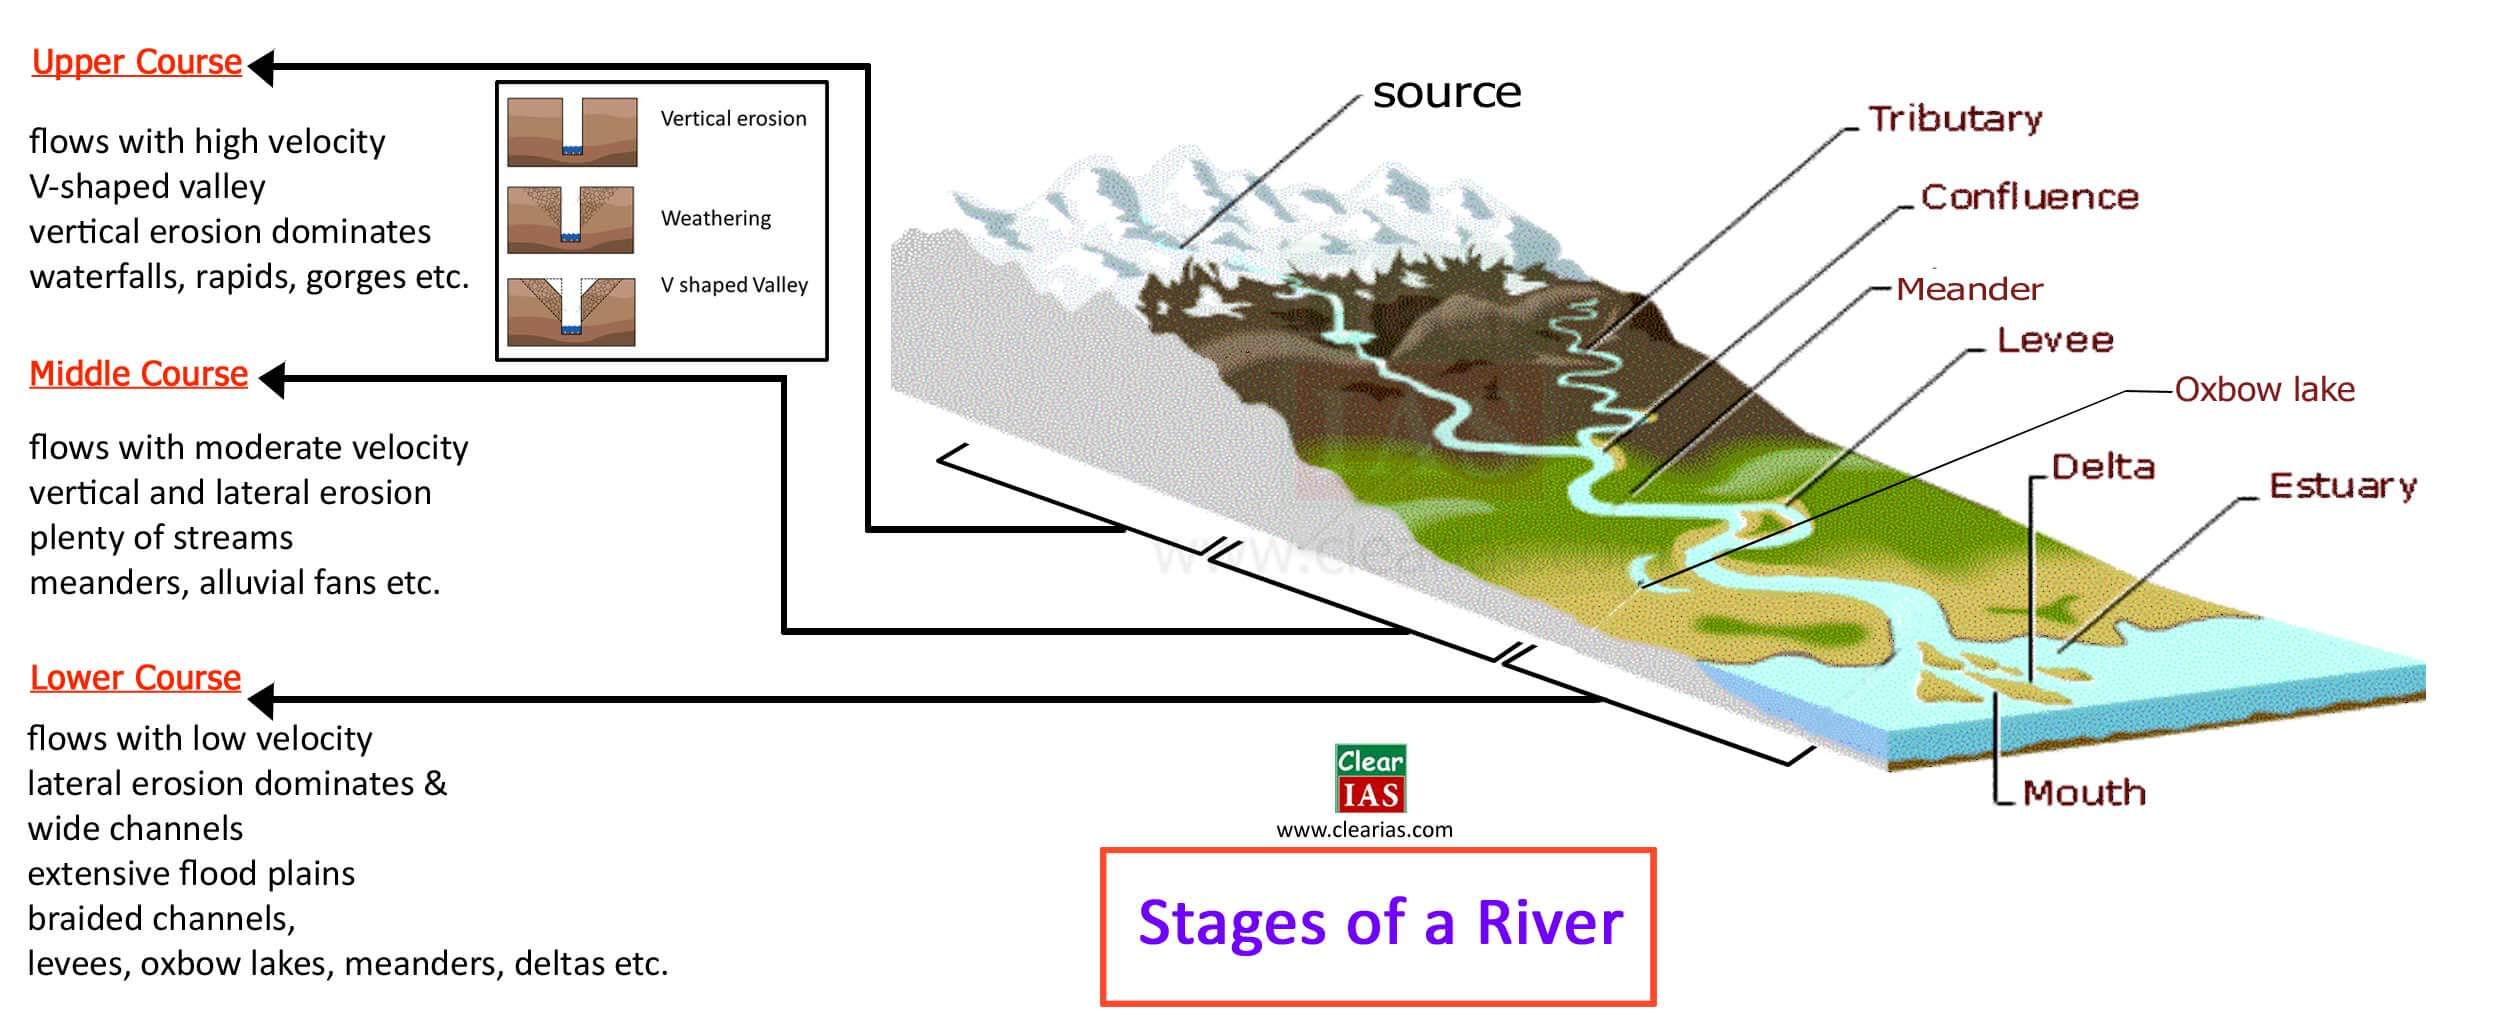 upper course, middle course and lower course of a river